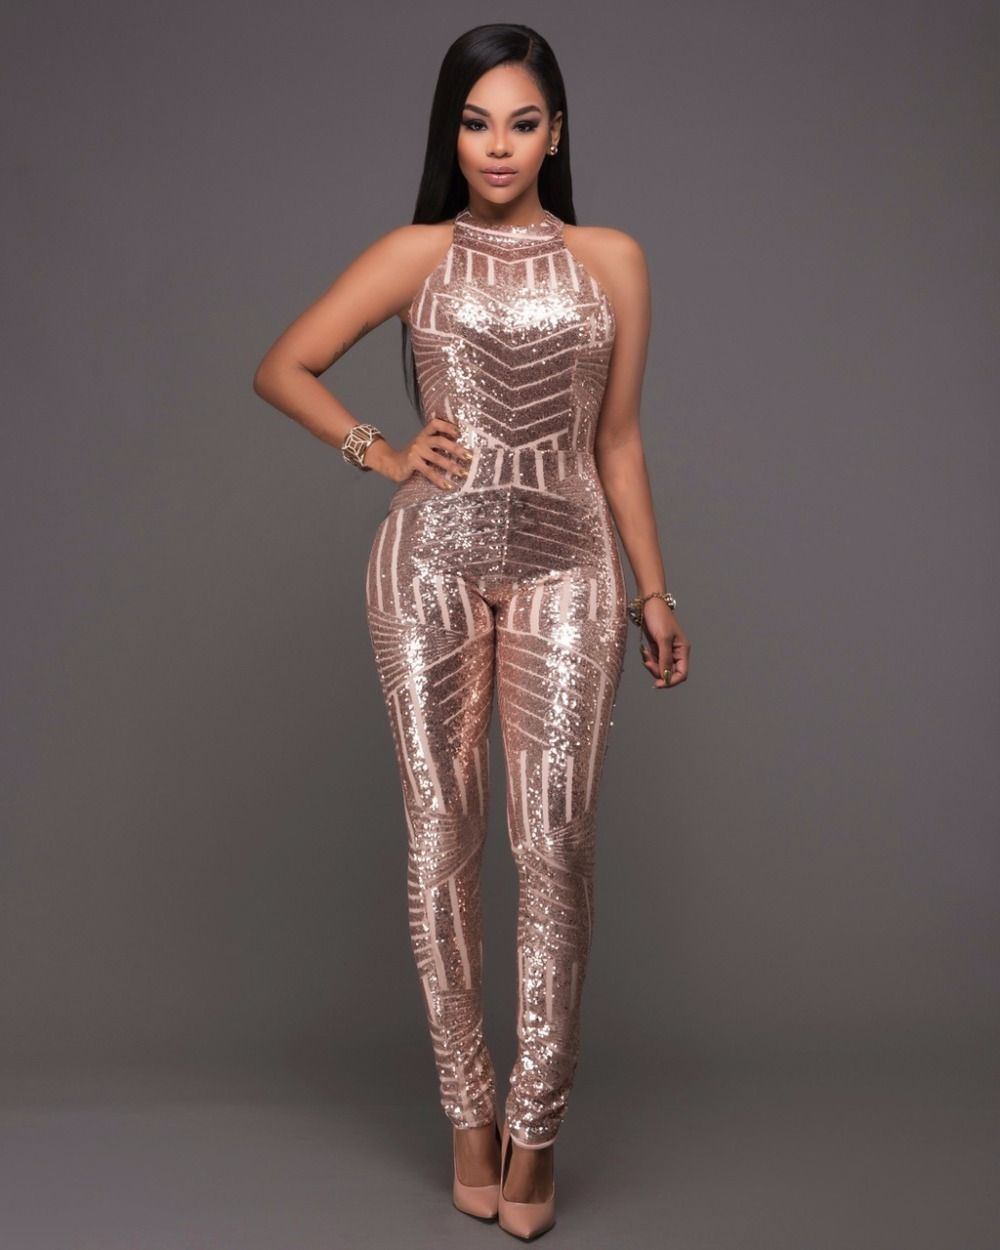 747b69d9c1 Ladies sequin long bodycon Jumpsuits Sexy glitter Romper backless Pencil  Overalls For women Fitness Bodysuit Combinaison c36